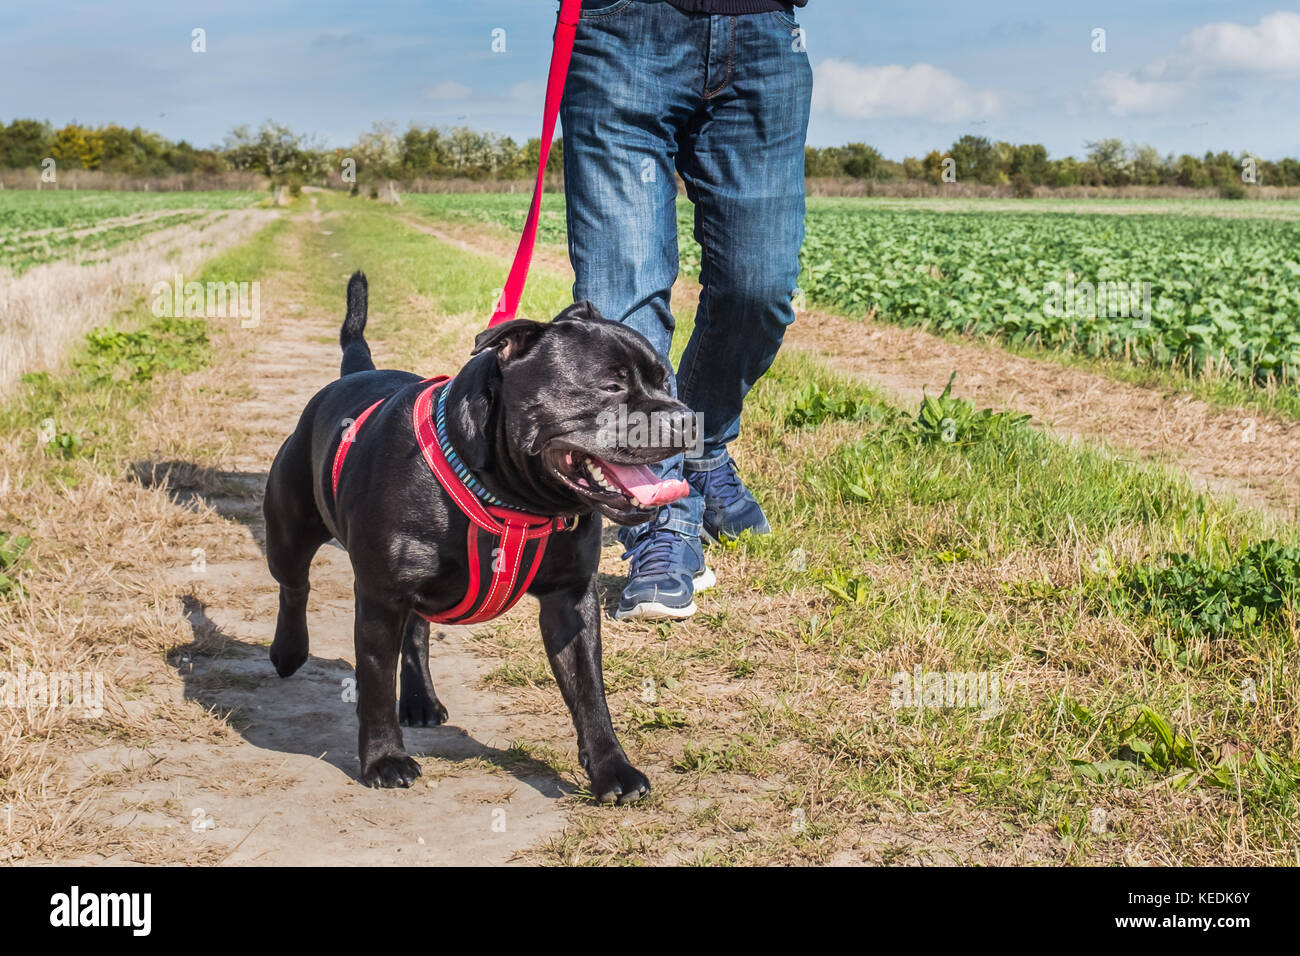 man with jeans and trainers walking a staffordshire bull terrier dog on a leash, a red lead with a red harness. - Stock Image